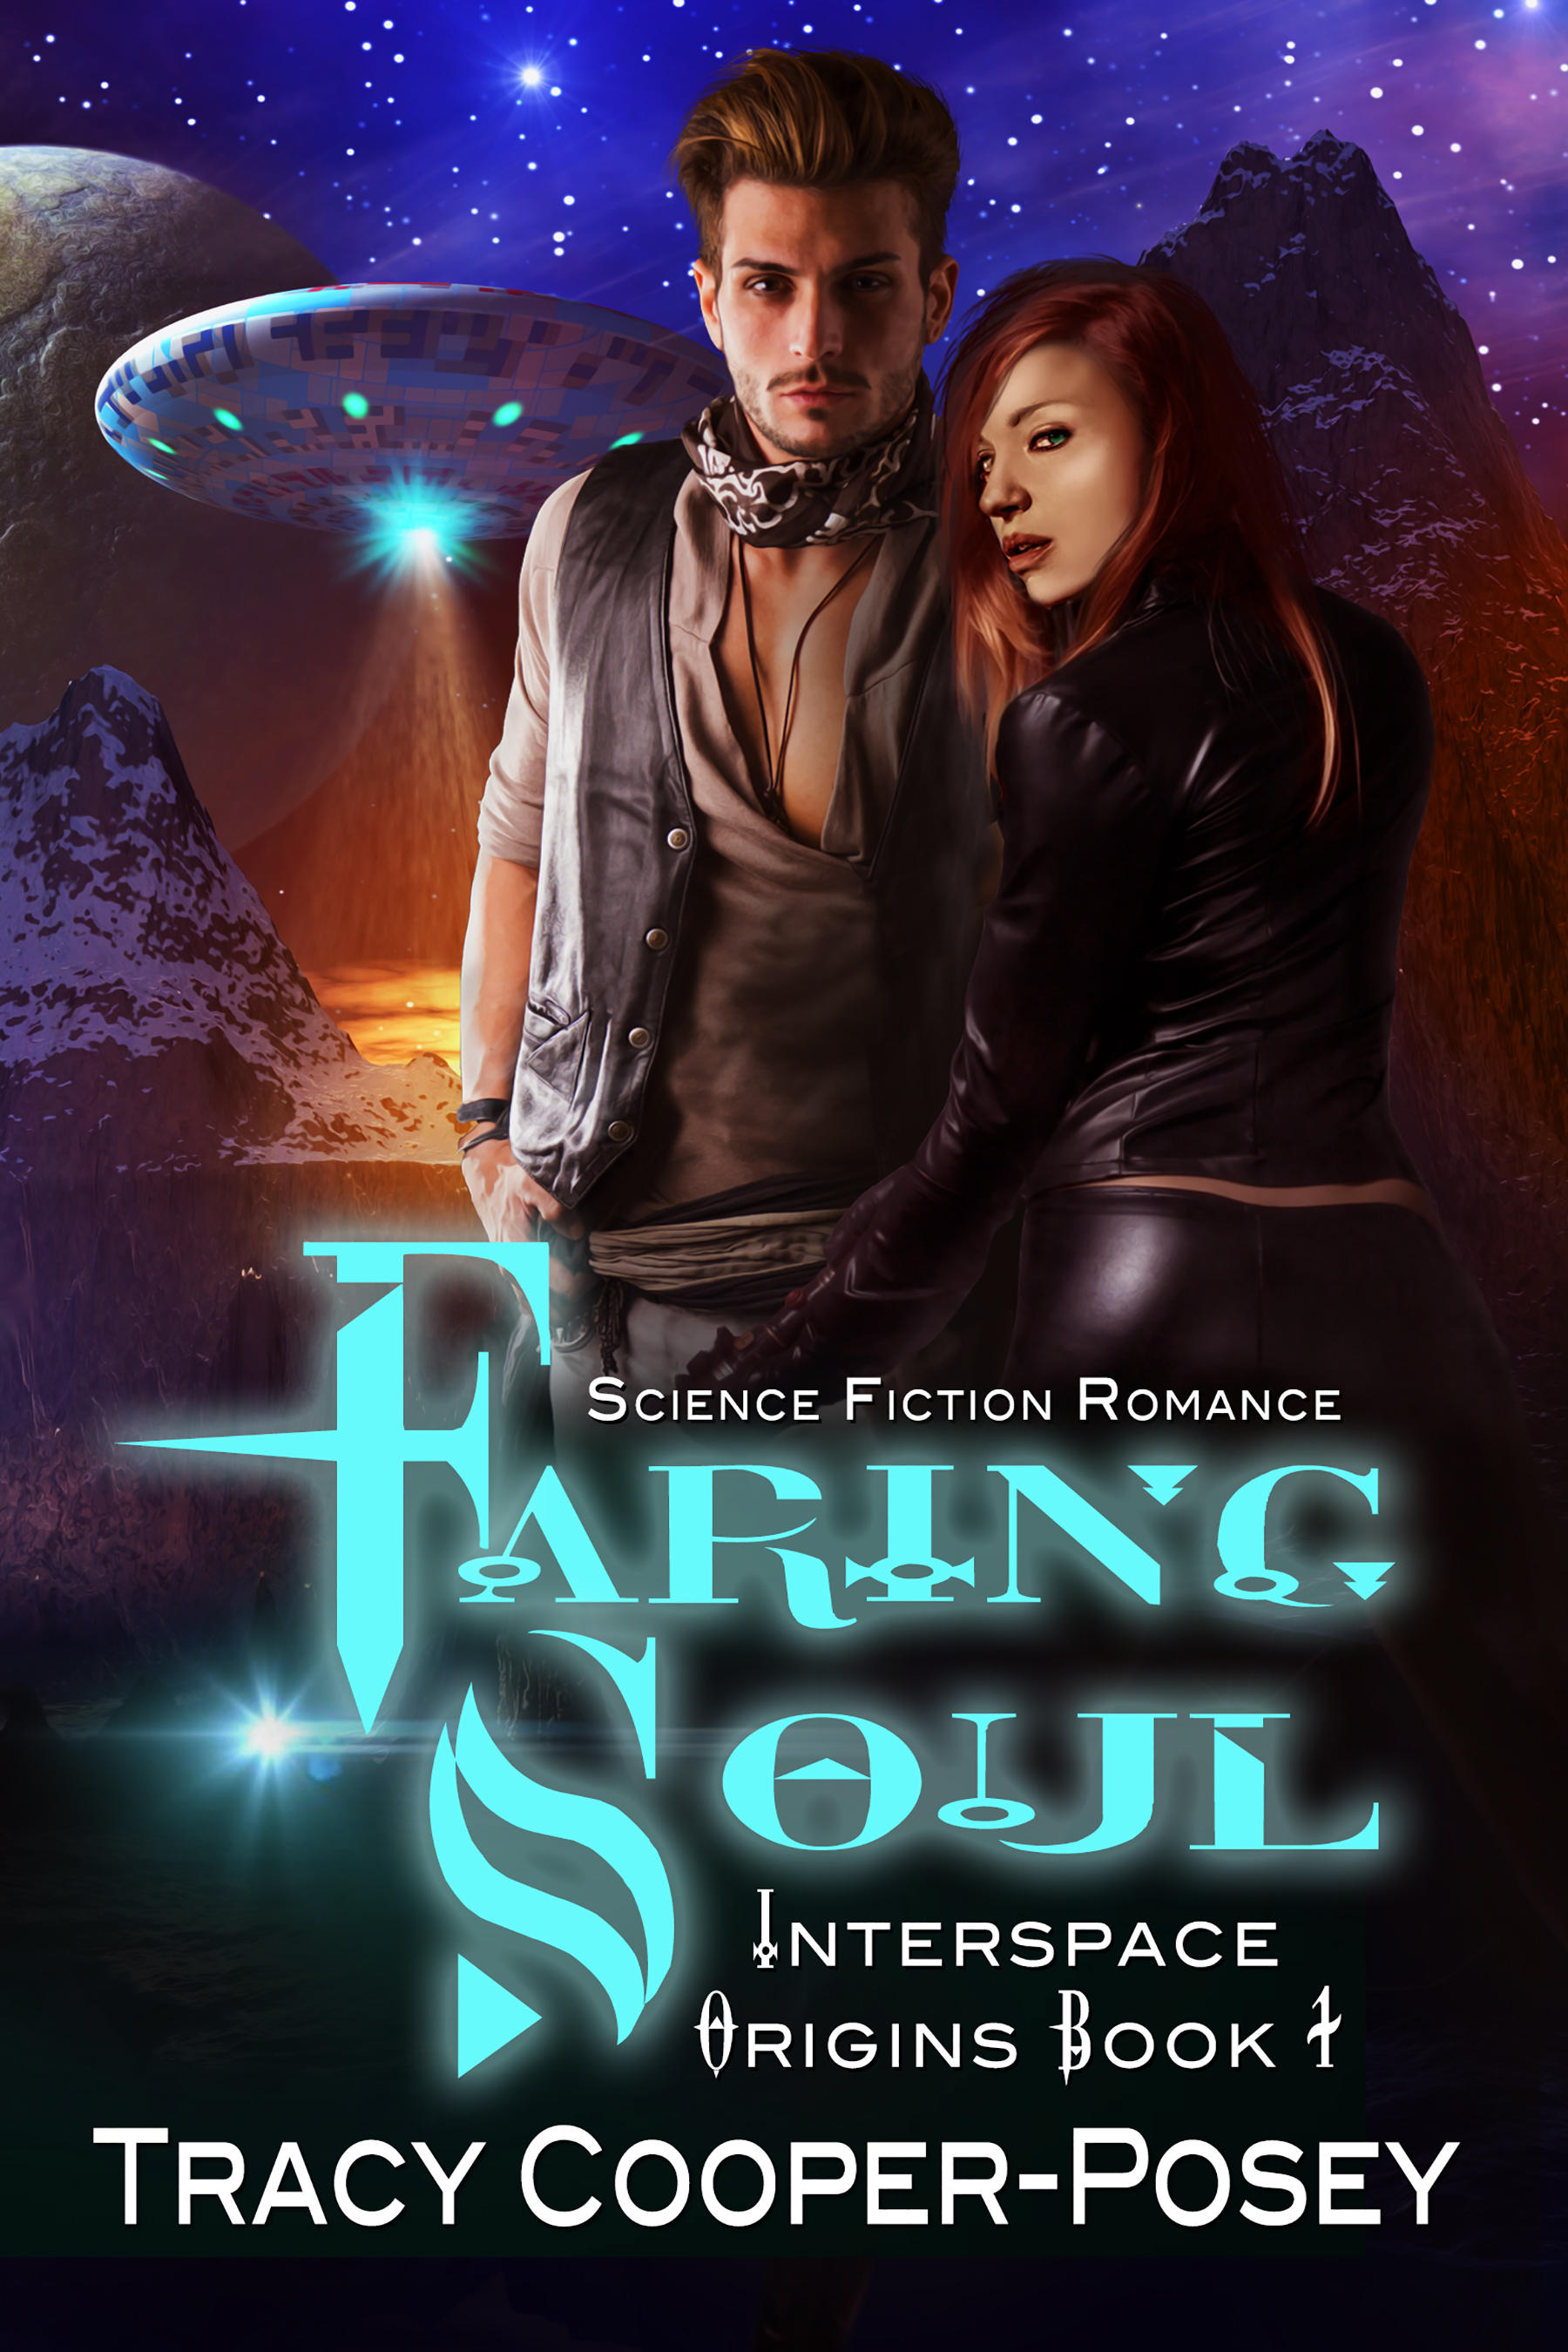 FARING SOUL Free on Kobo for the Next 6 Days Only.